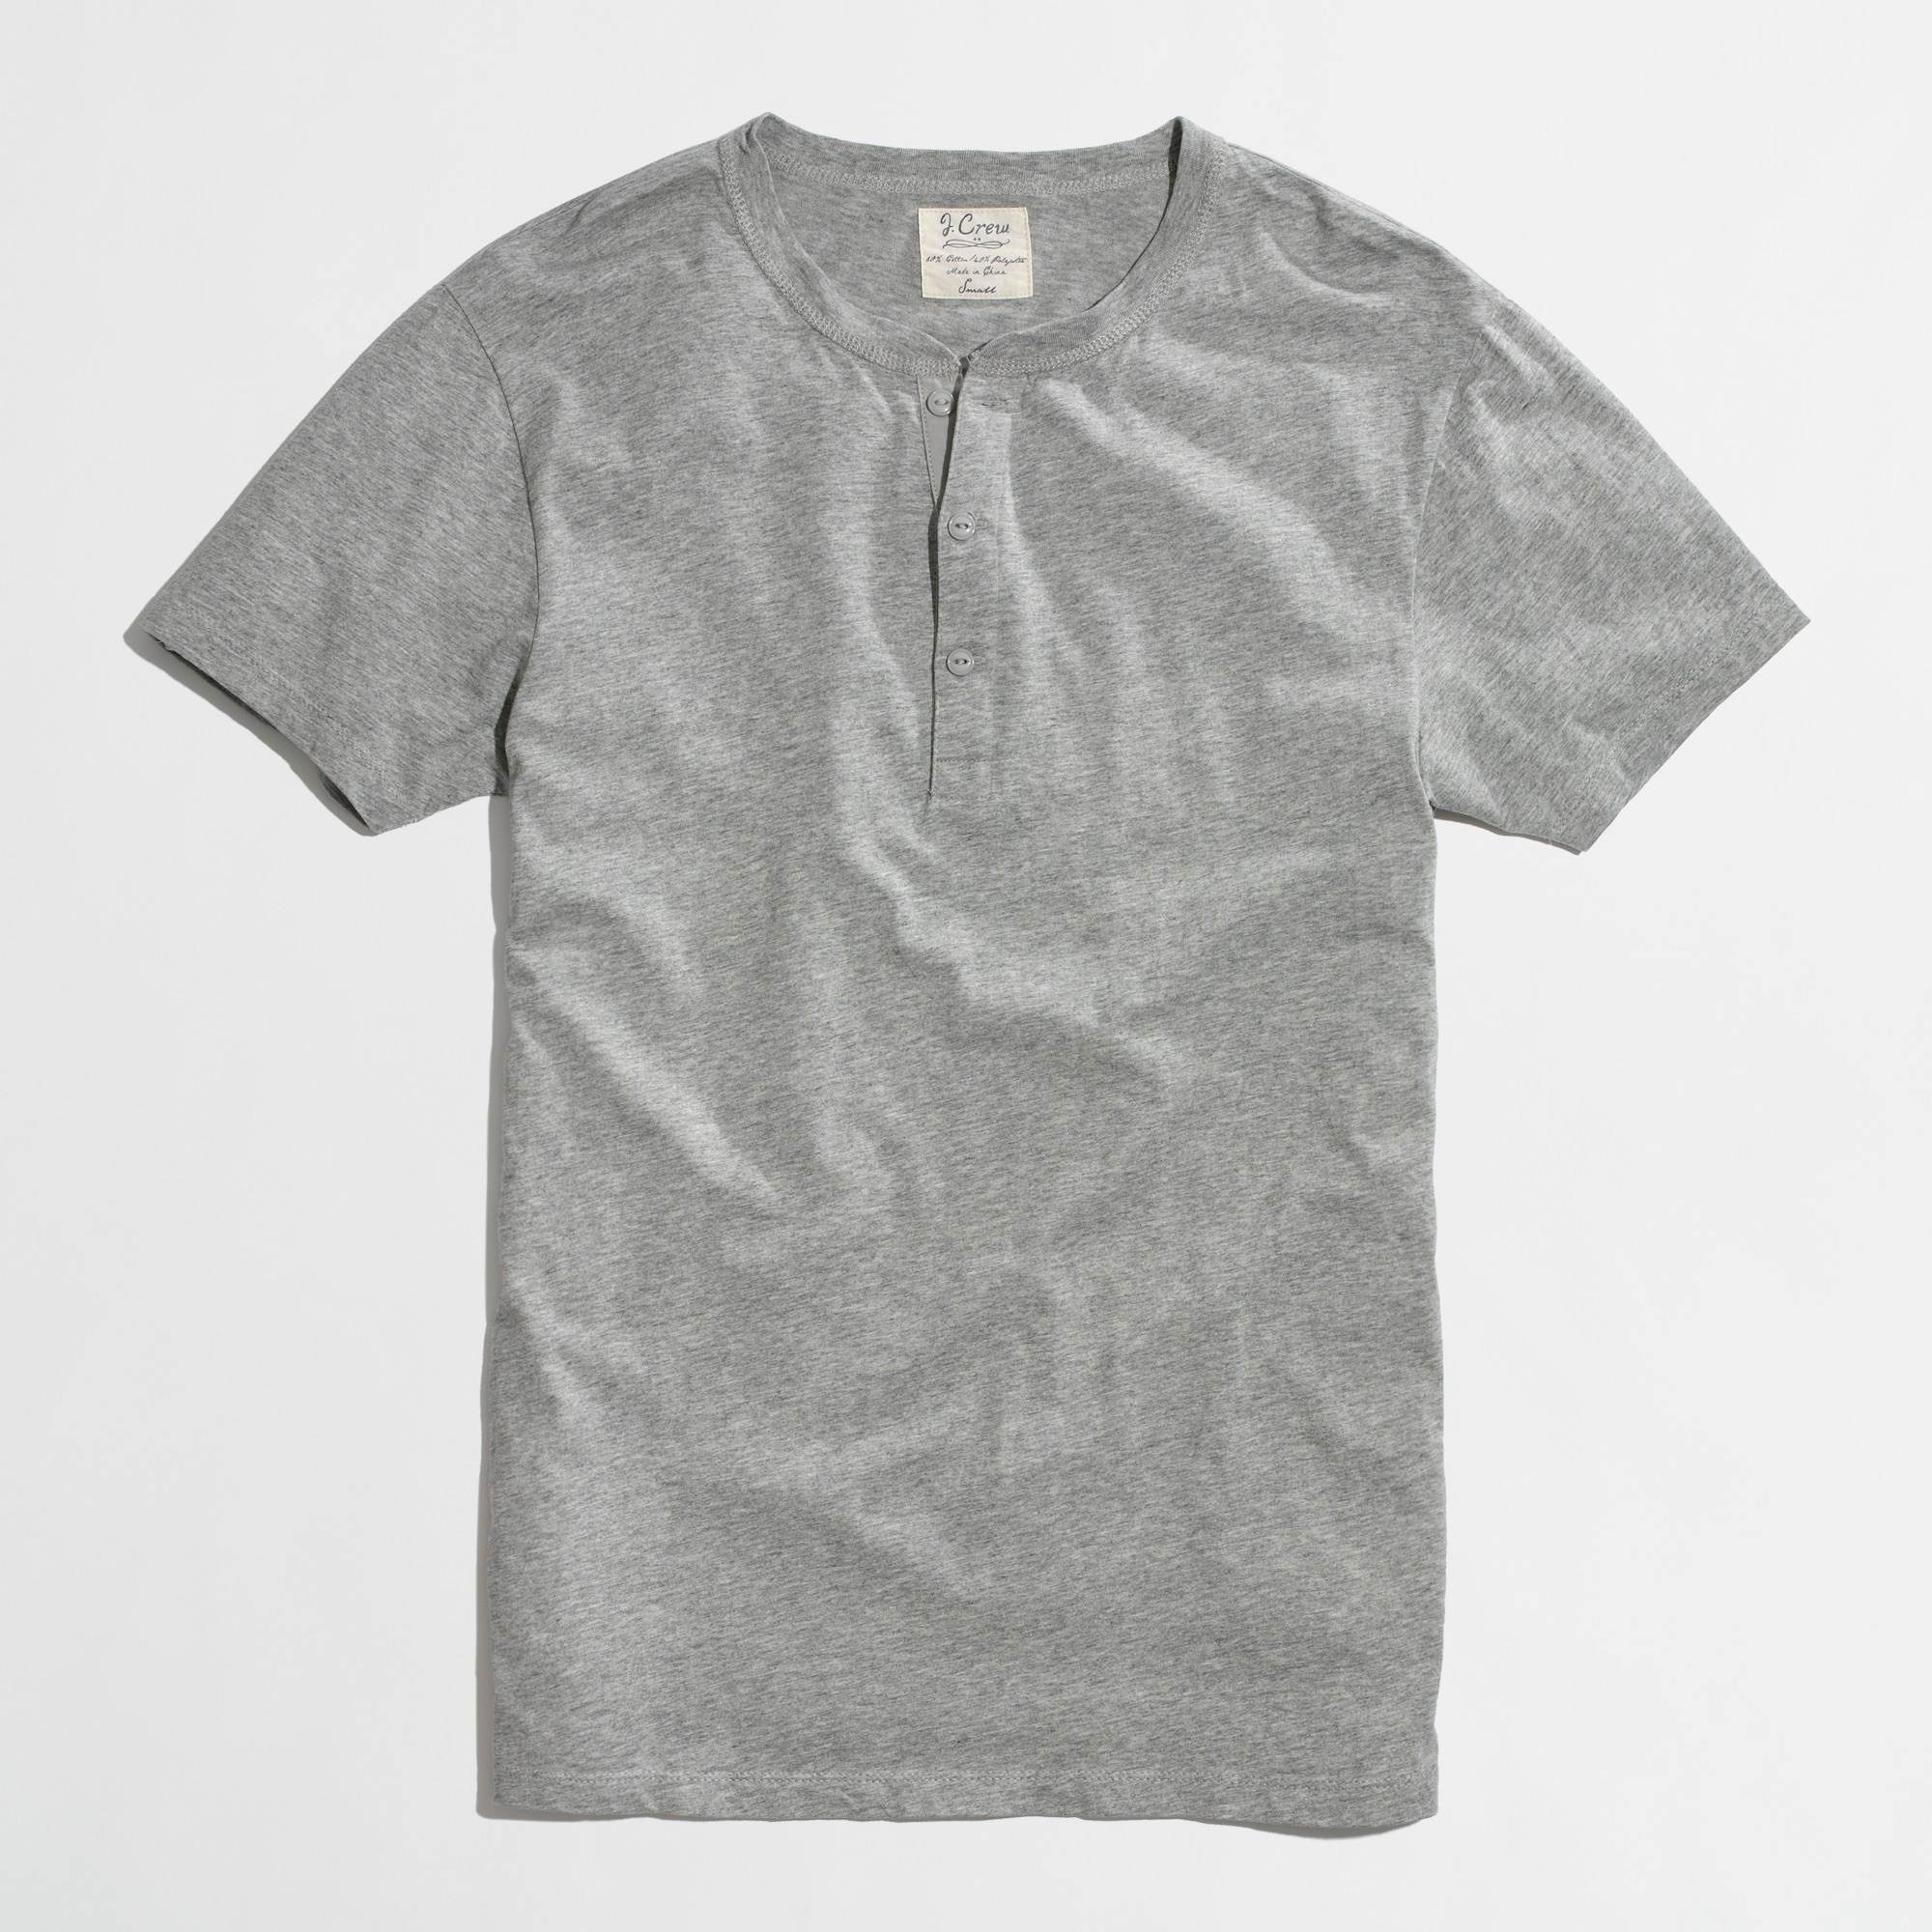 Image 1 for Slim short-sleeve henley